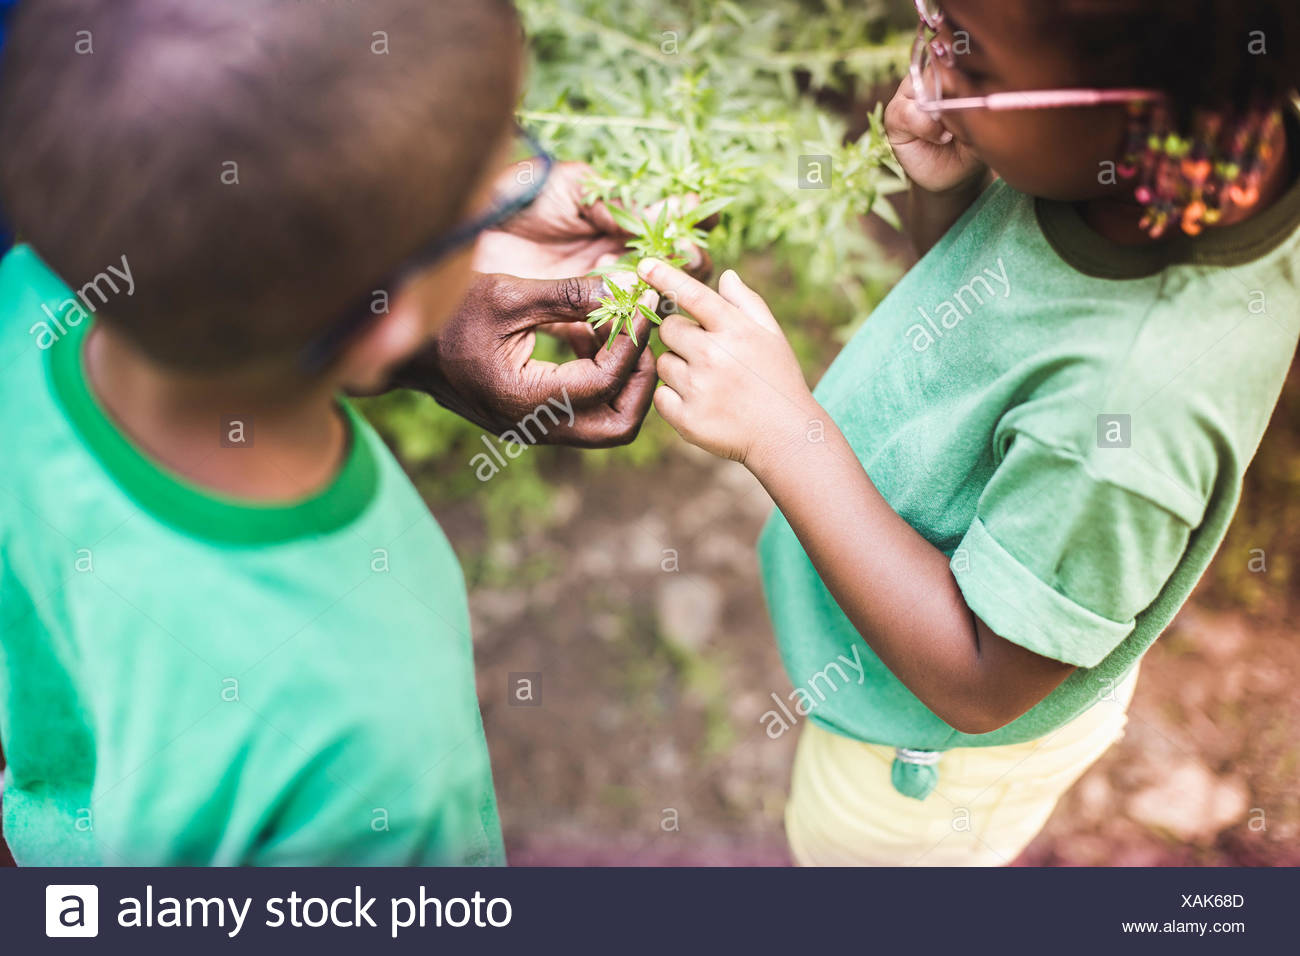 Fathers hands holding plants for son and daughter at forest eco camp - Stock Image